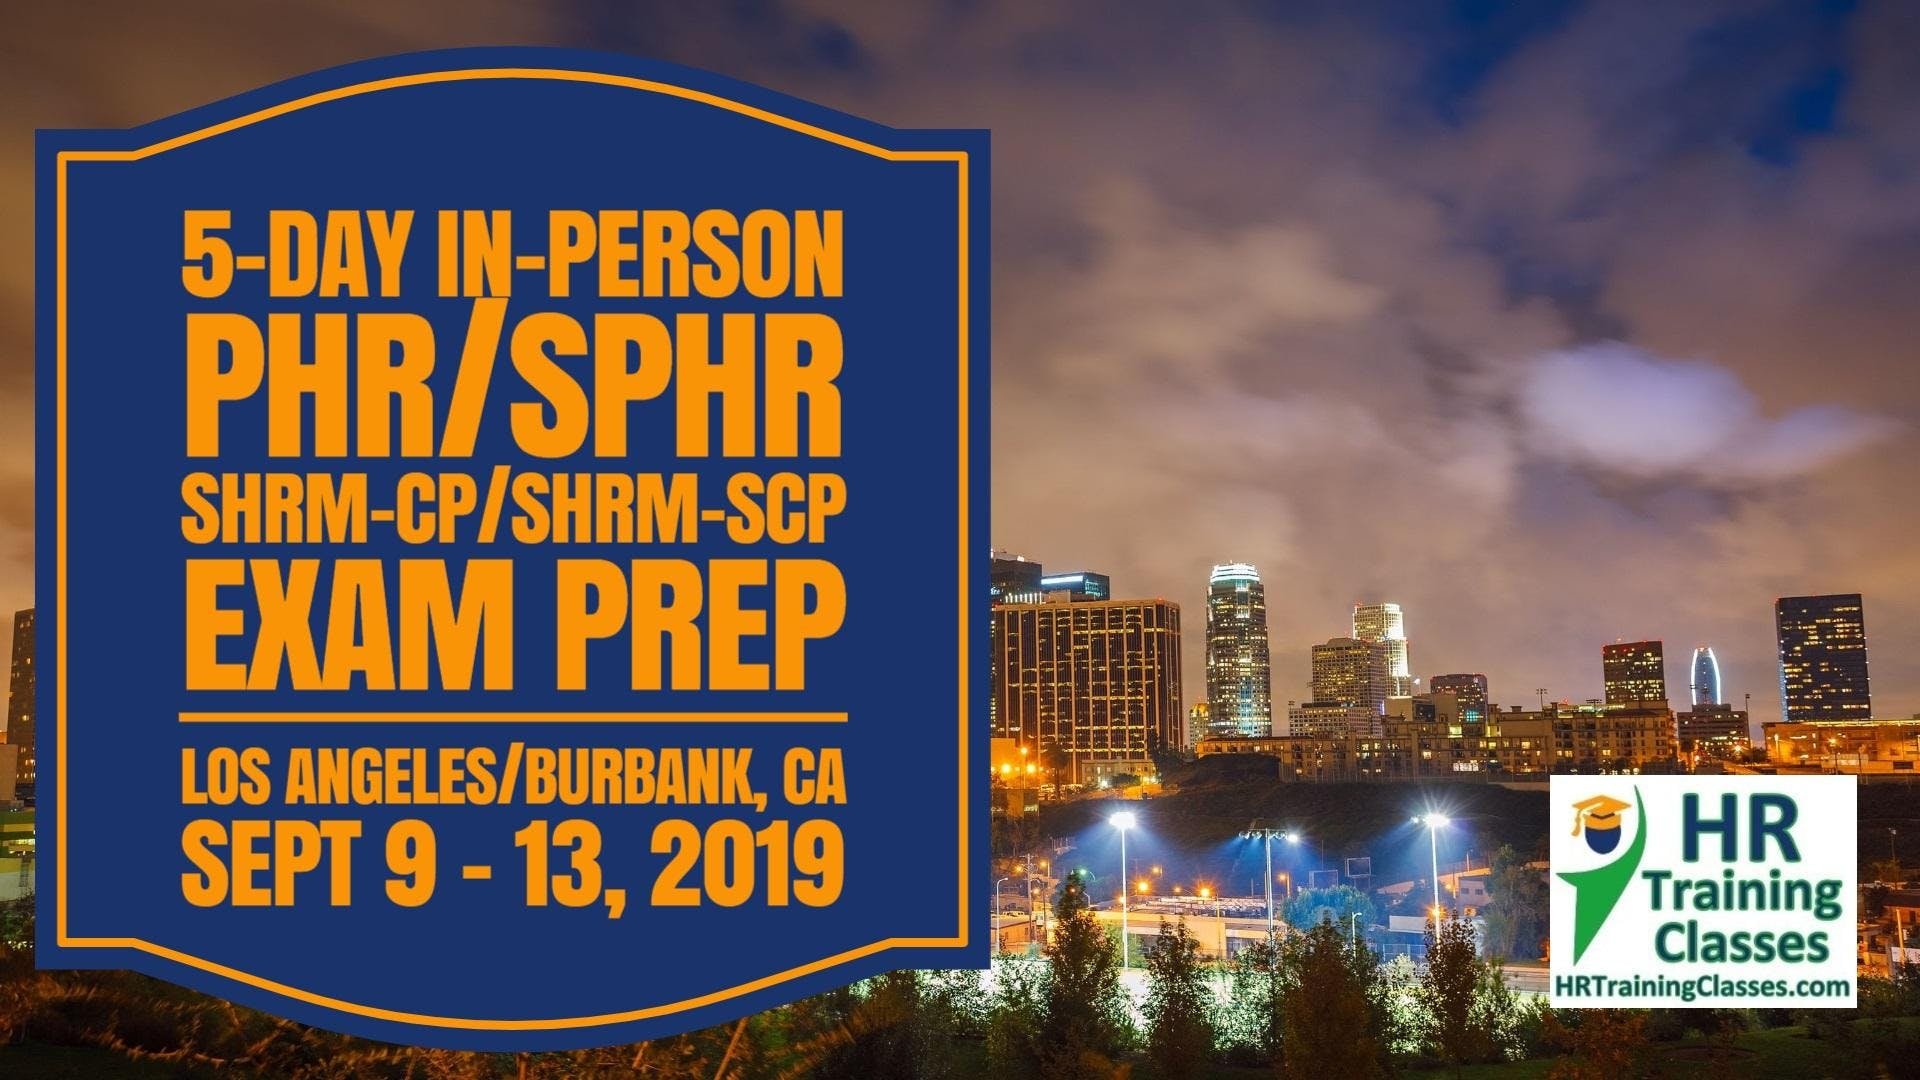 5 Day SHRM-CP, SHRM-SCP, PHR, SPHR Exam Prep Boot Camp in Los Angeles, CA (Starts 9/9/2019)